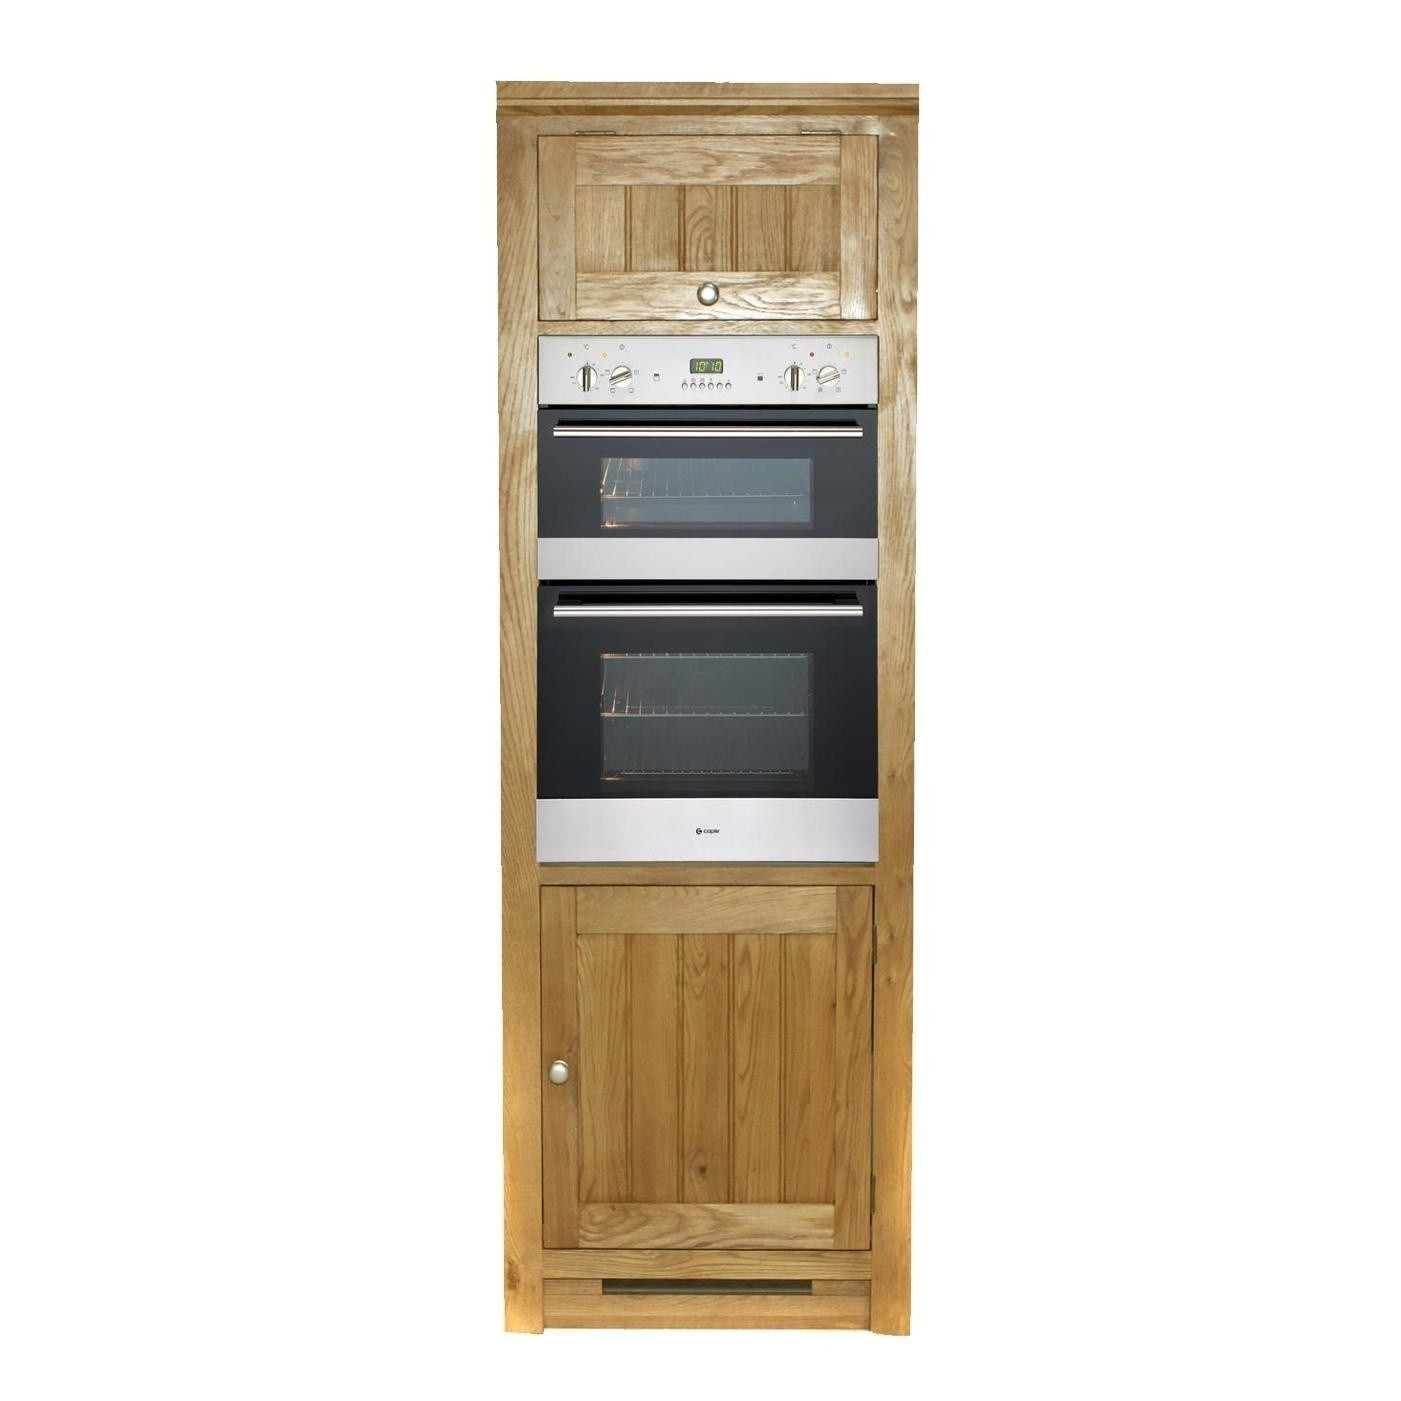 1459422949-tall_double_oven_unit.jpg